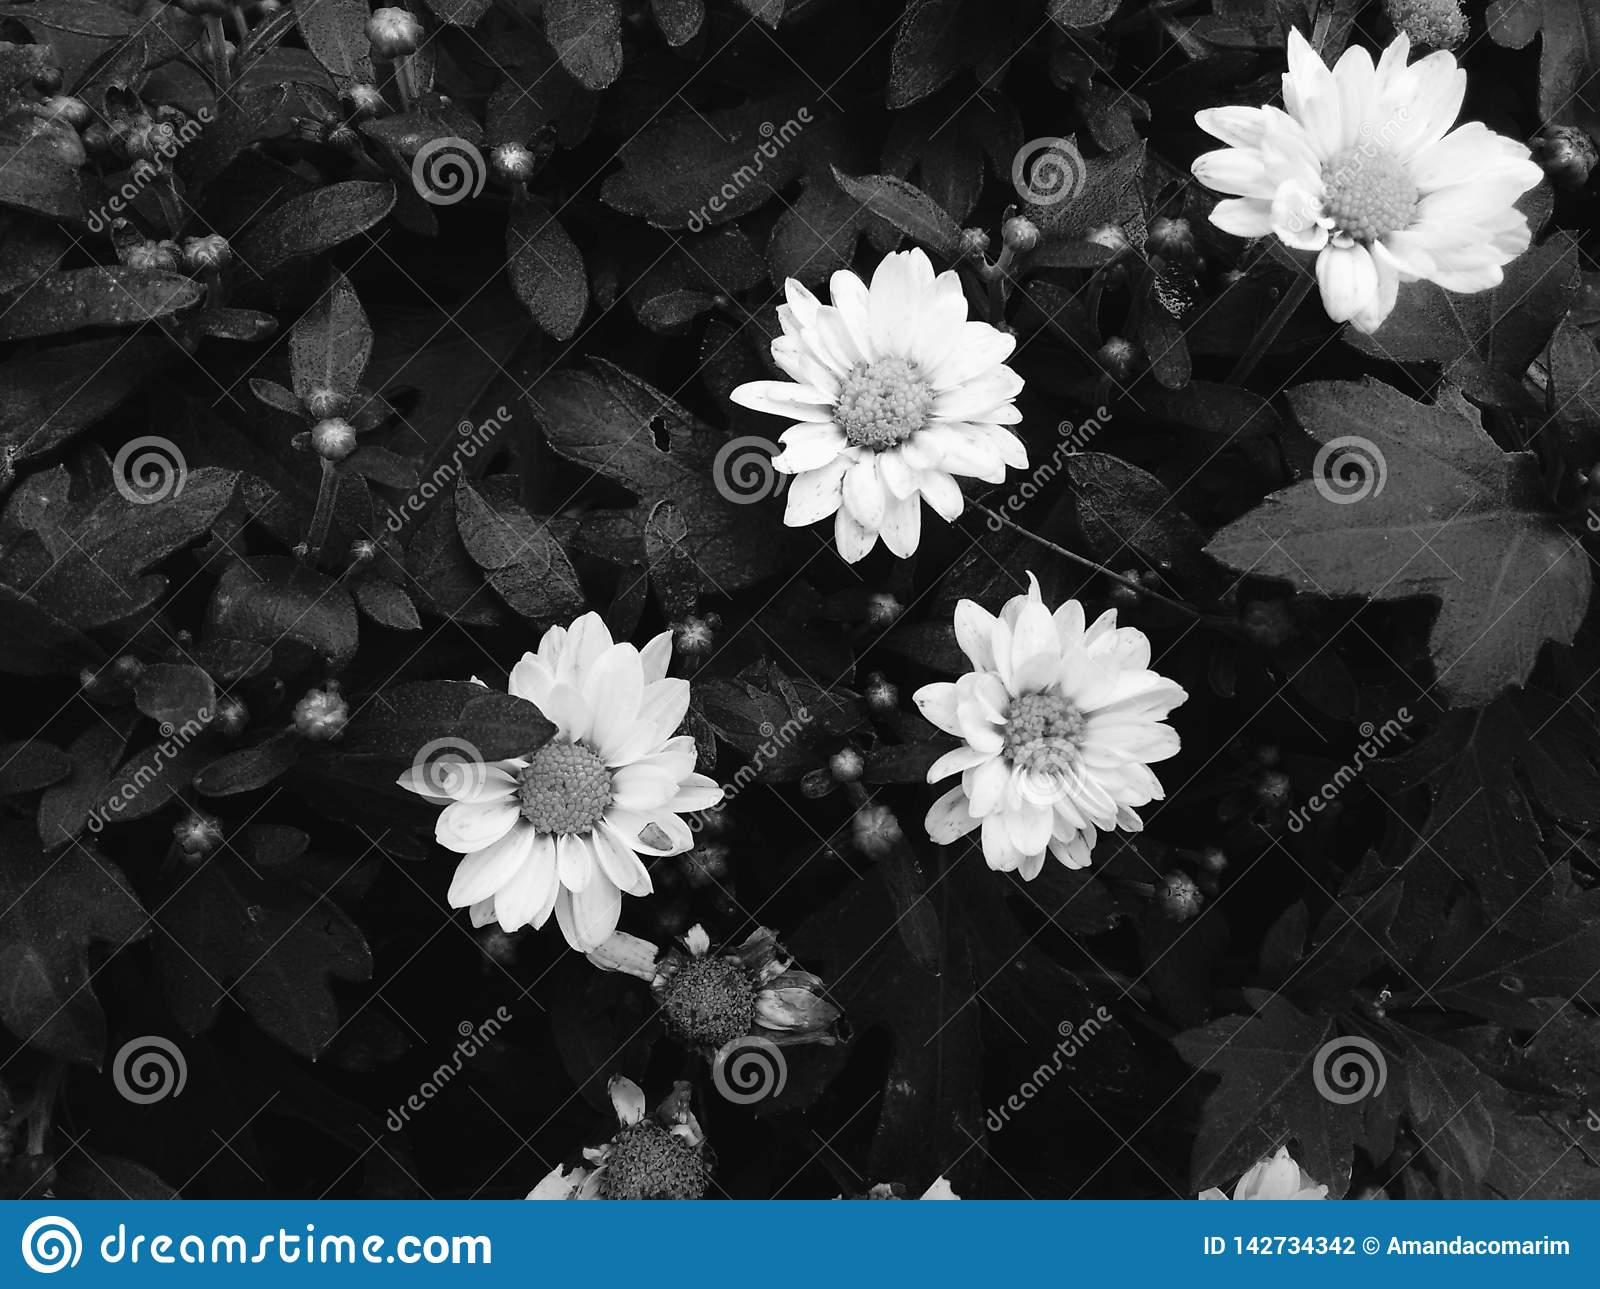 Daisy flower in black and white